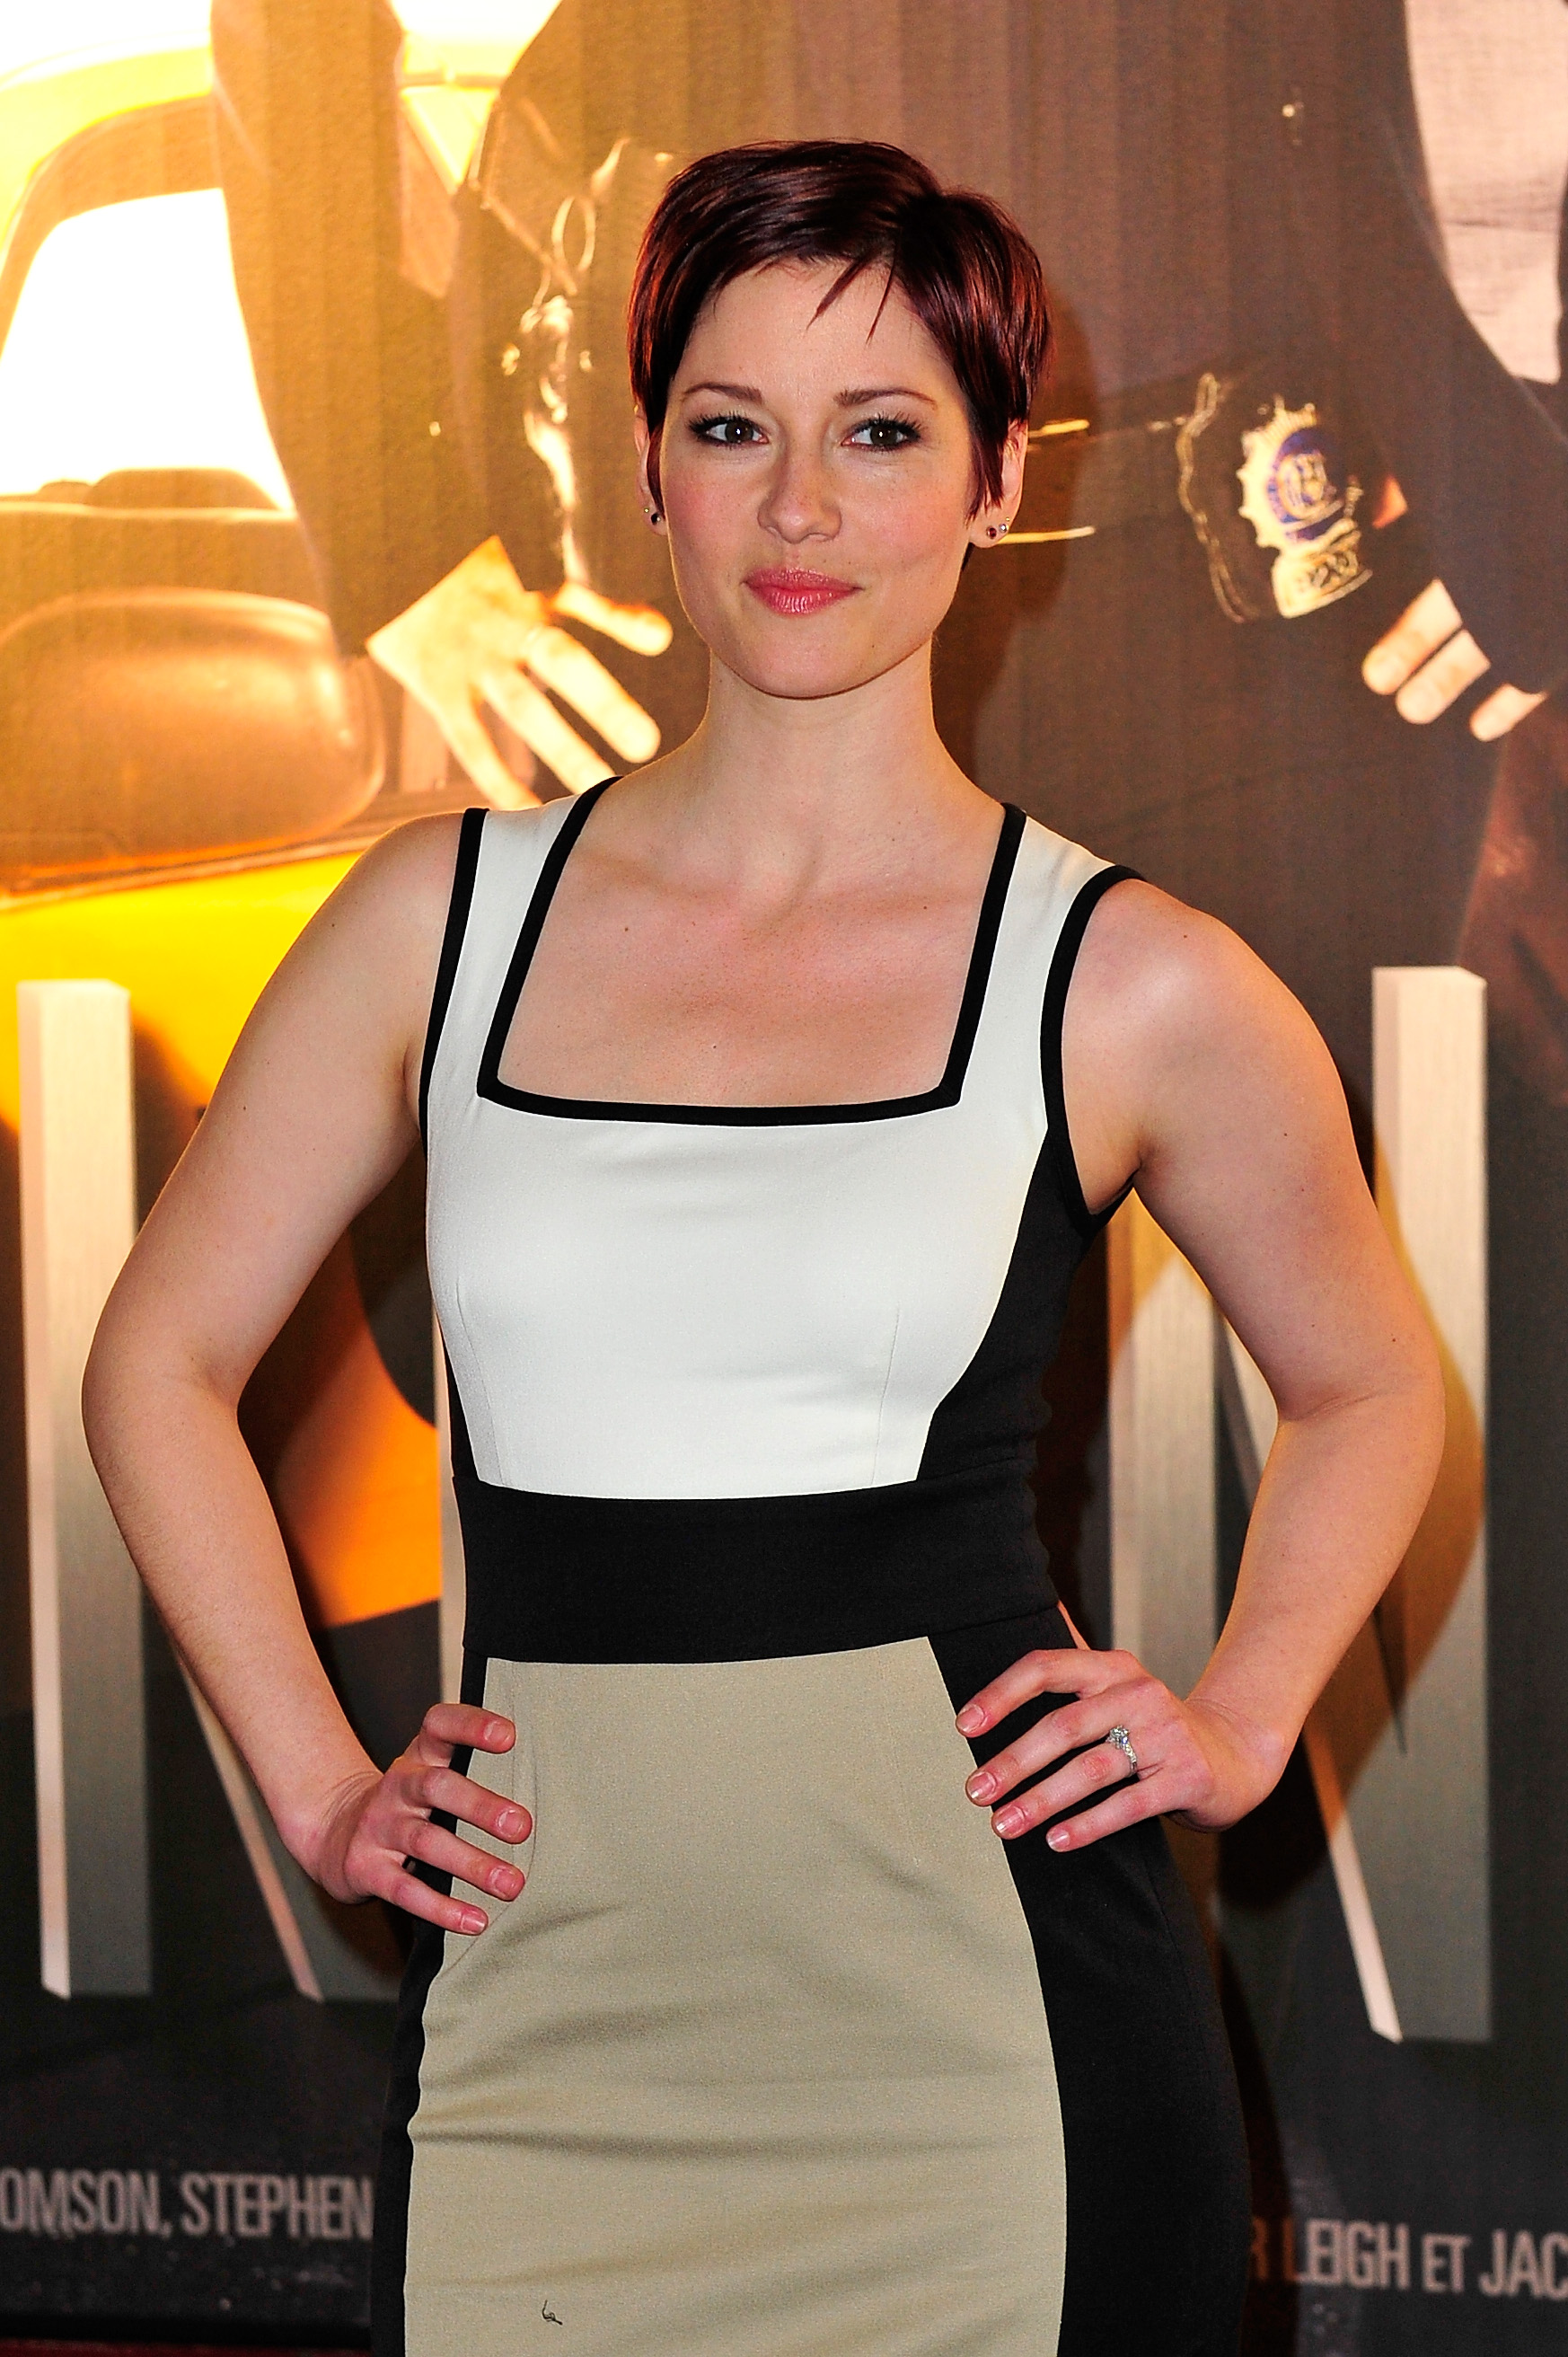 Chyler Leigh attends the 'Taxi Brooklyn' Paris premiere in Paris on March 10, 2014.